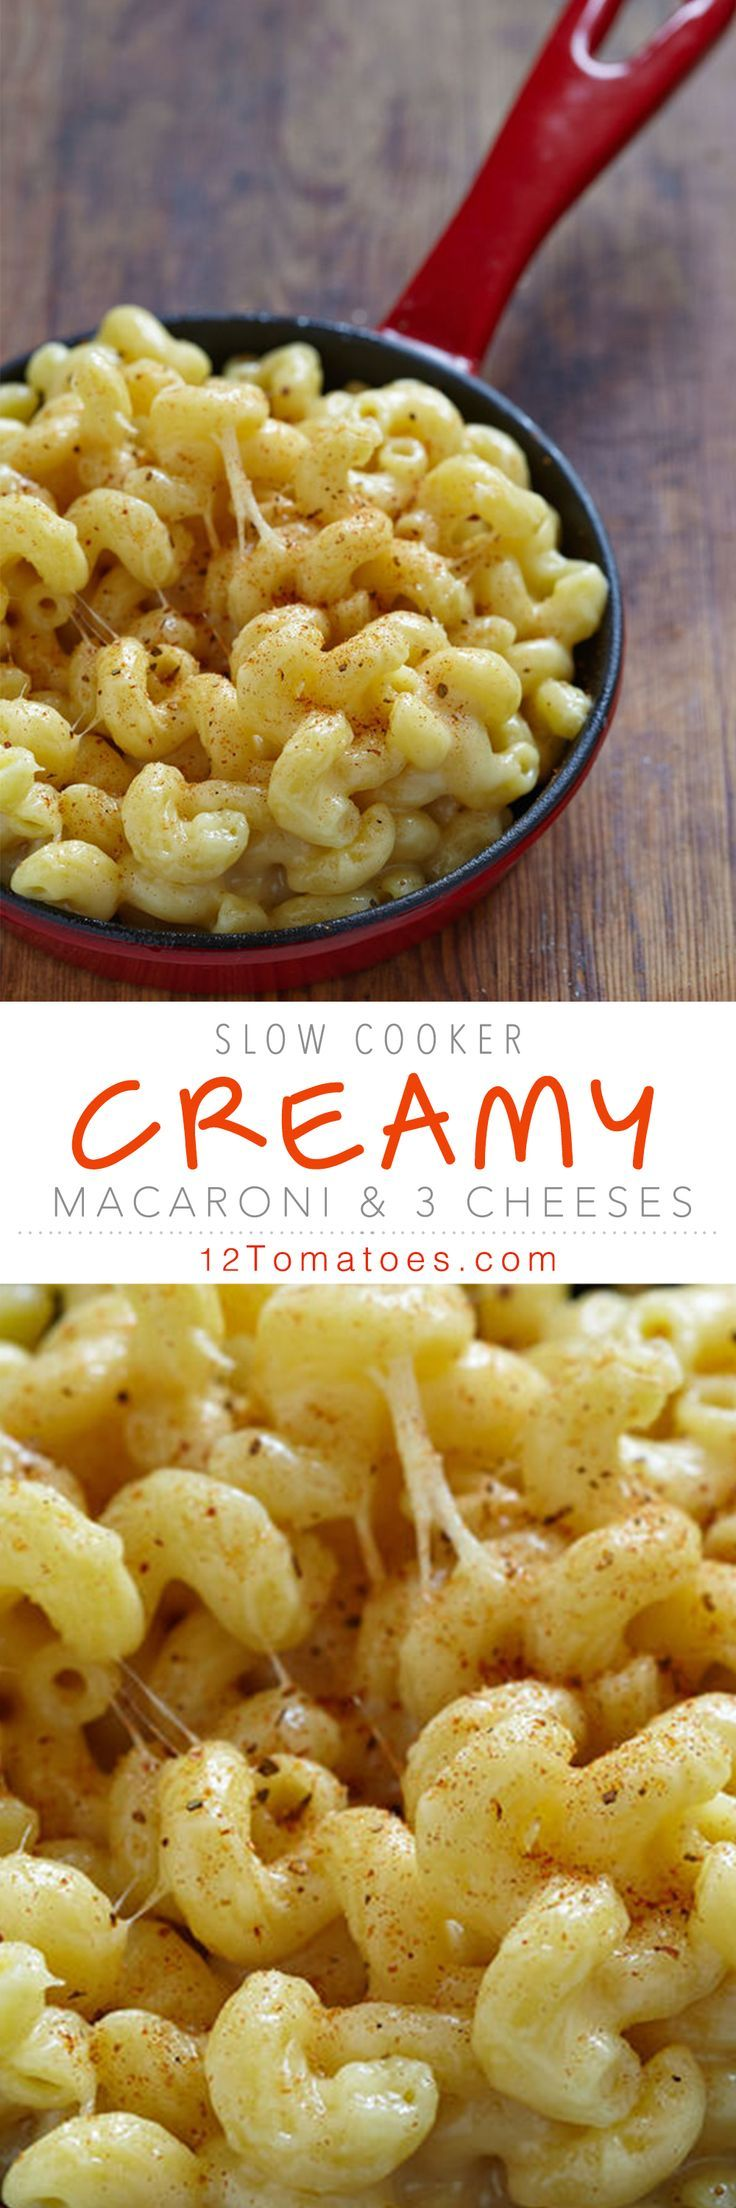 We love it, but what we don't love is having to boil the milk, mix in various cheeses and scrape the bottom of the saucepan to keep the cheese from burning…. This slow cooker recipe eliminates all of that and we added more cheese (always a good thing), so you still get a molten cheese dish without all the hassle.